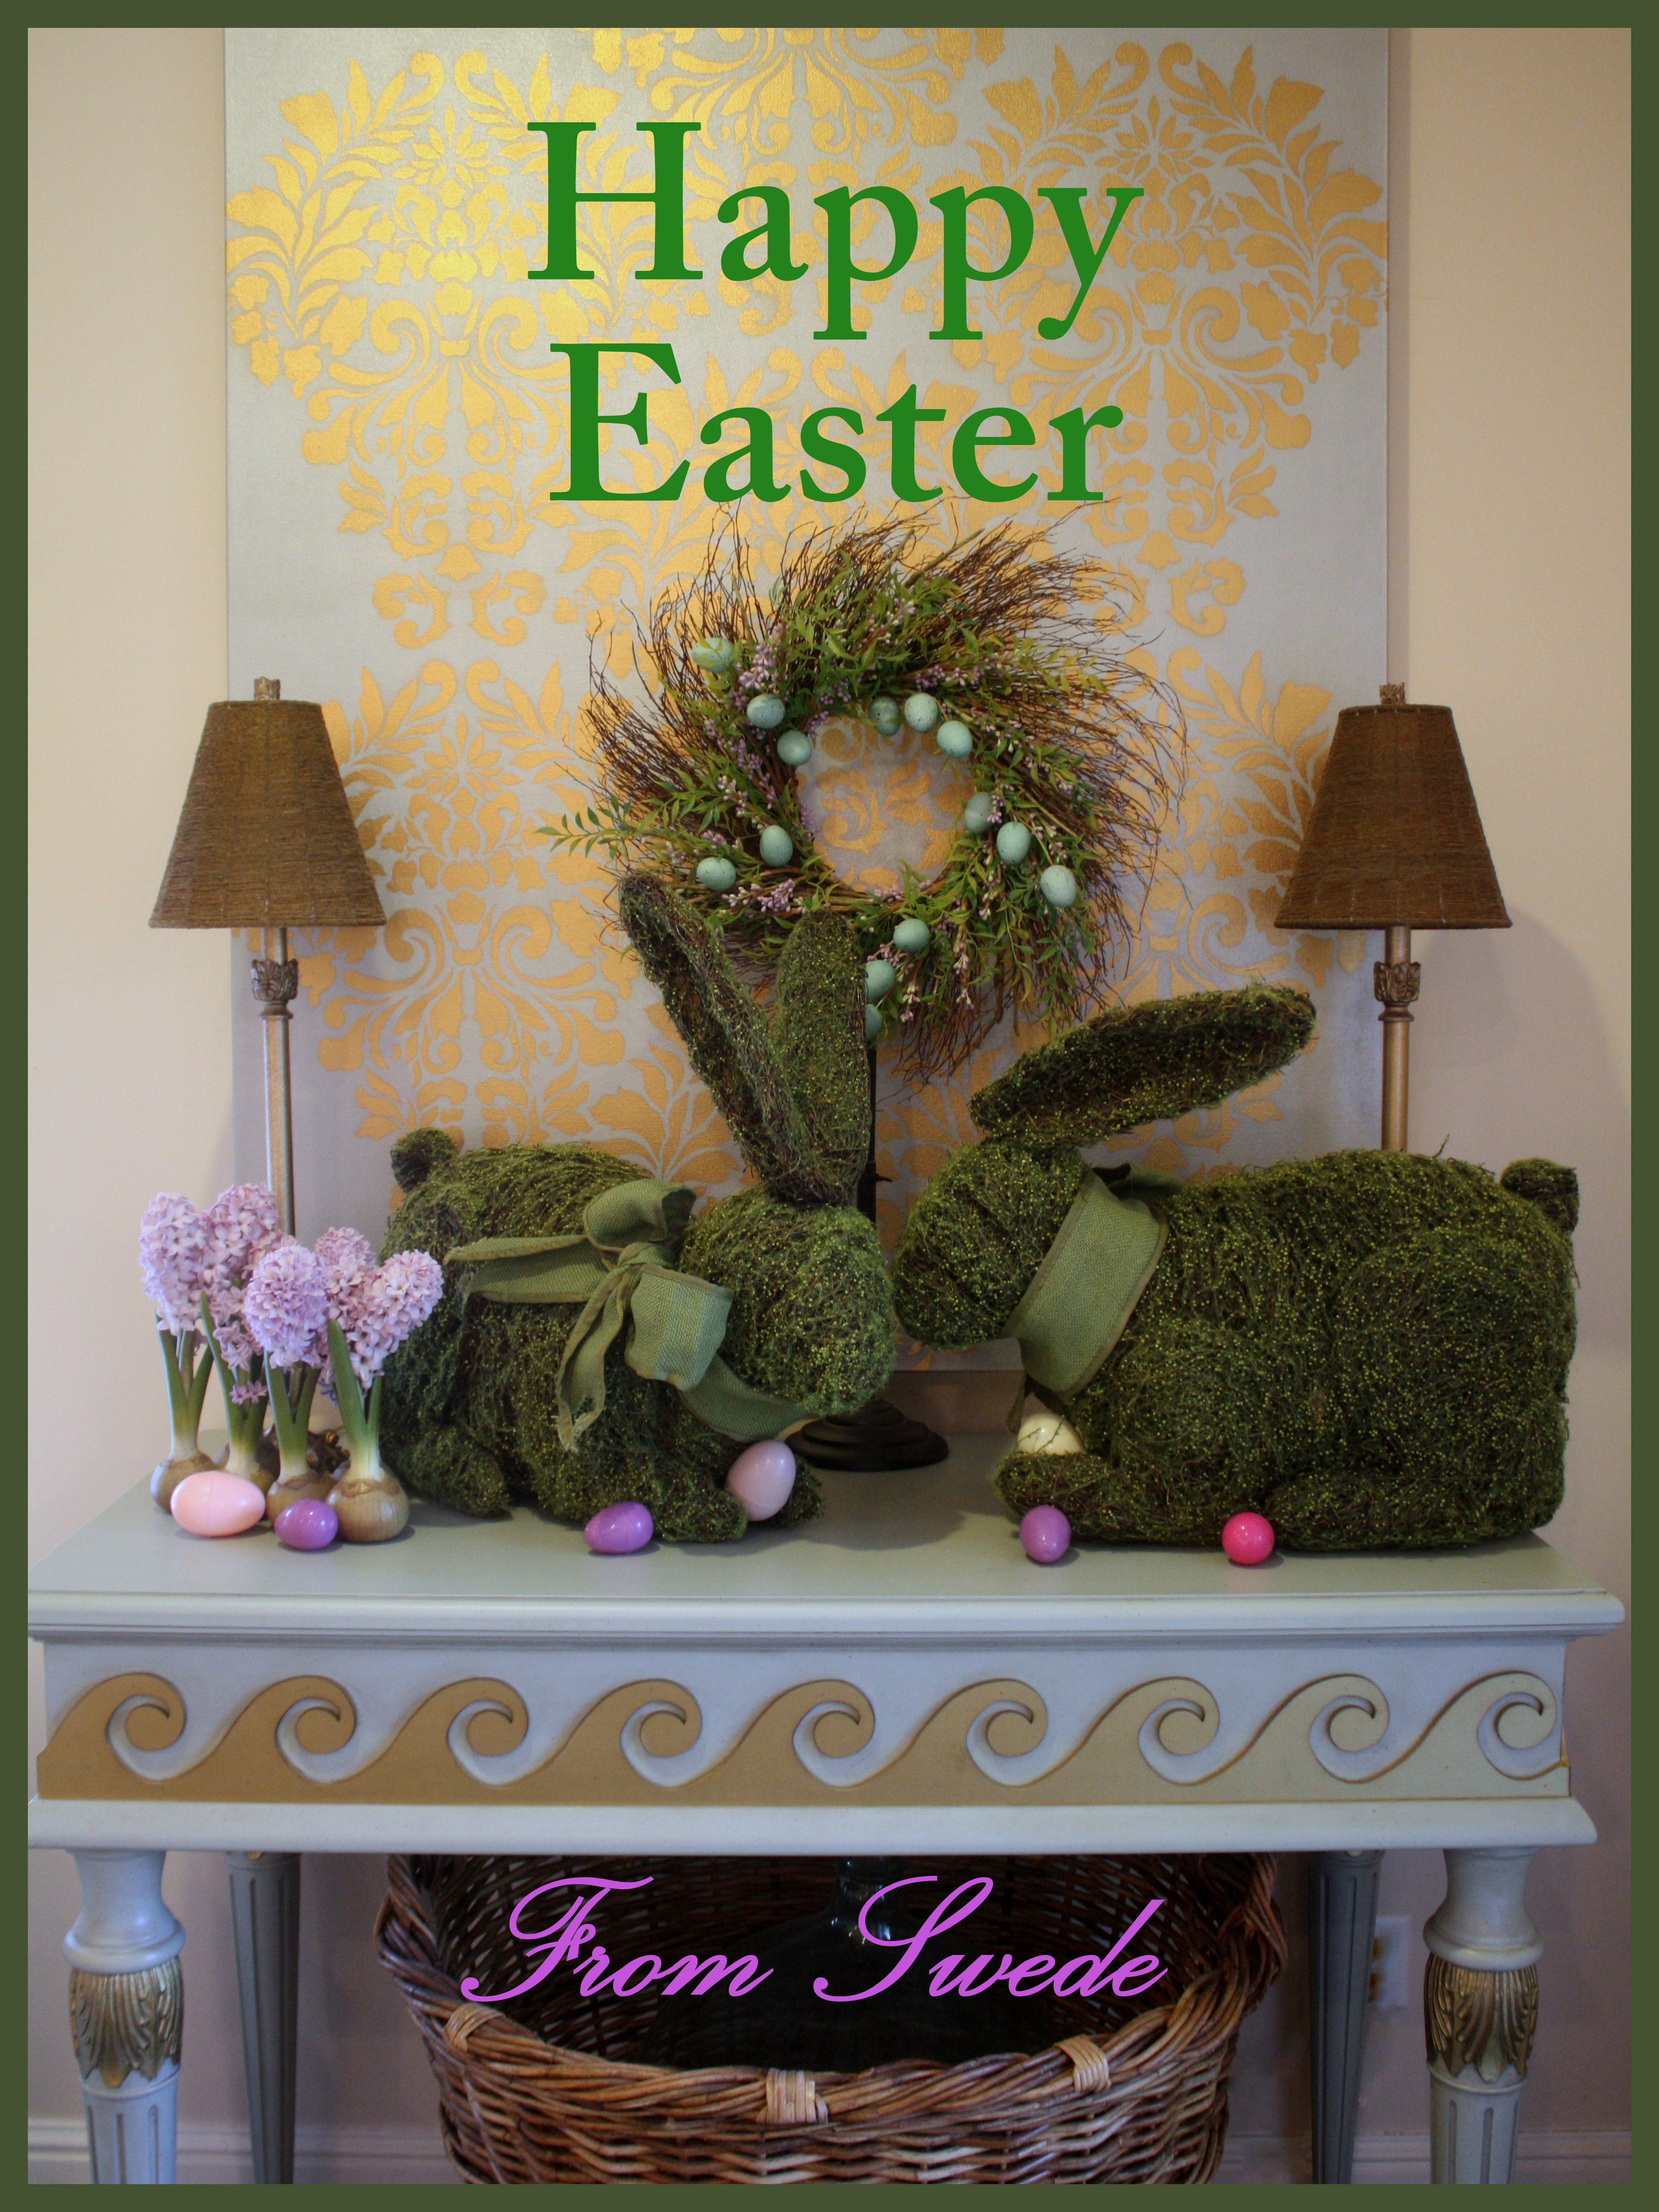 Easter Holiday Greetings Swede